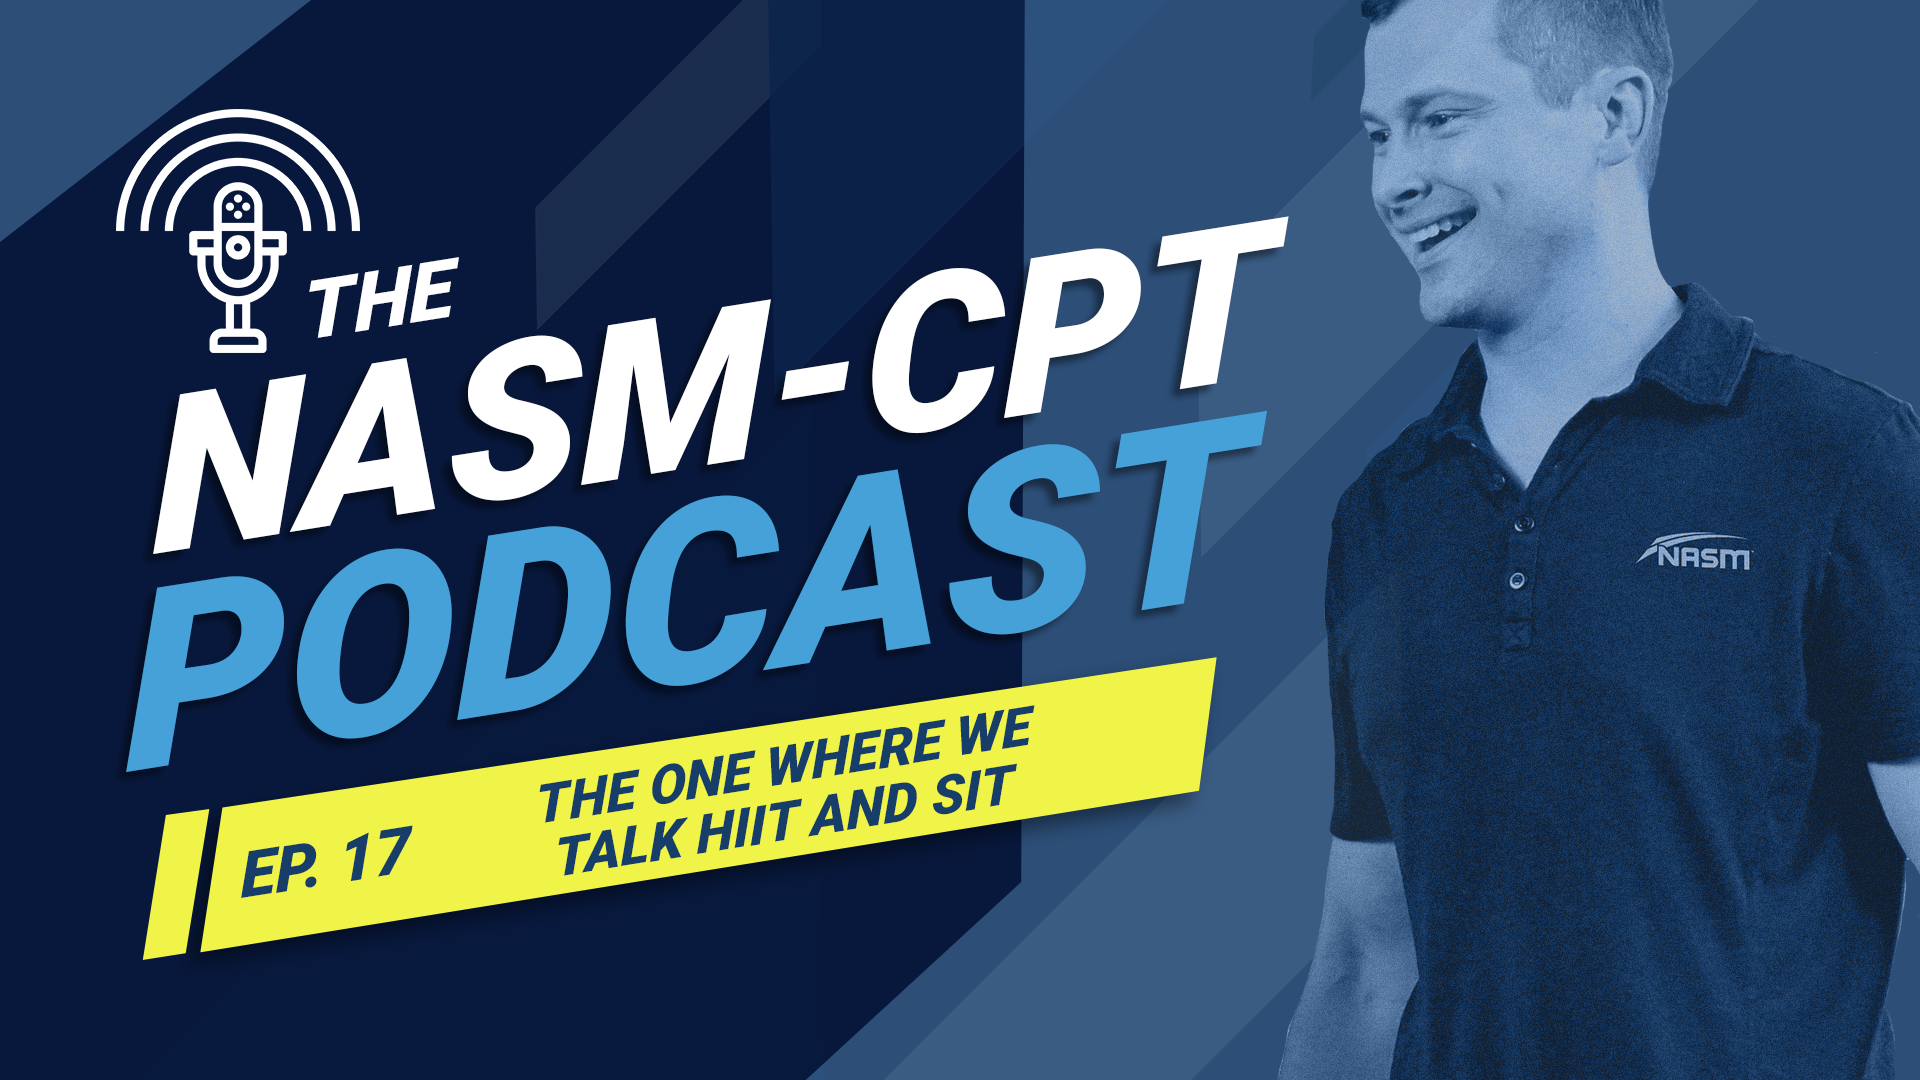 nasm-cpt podcast logo